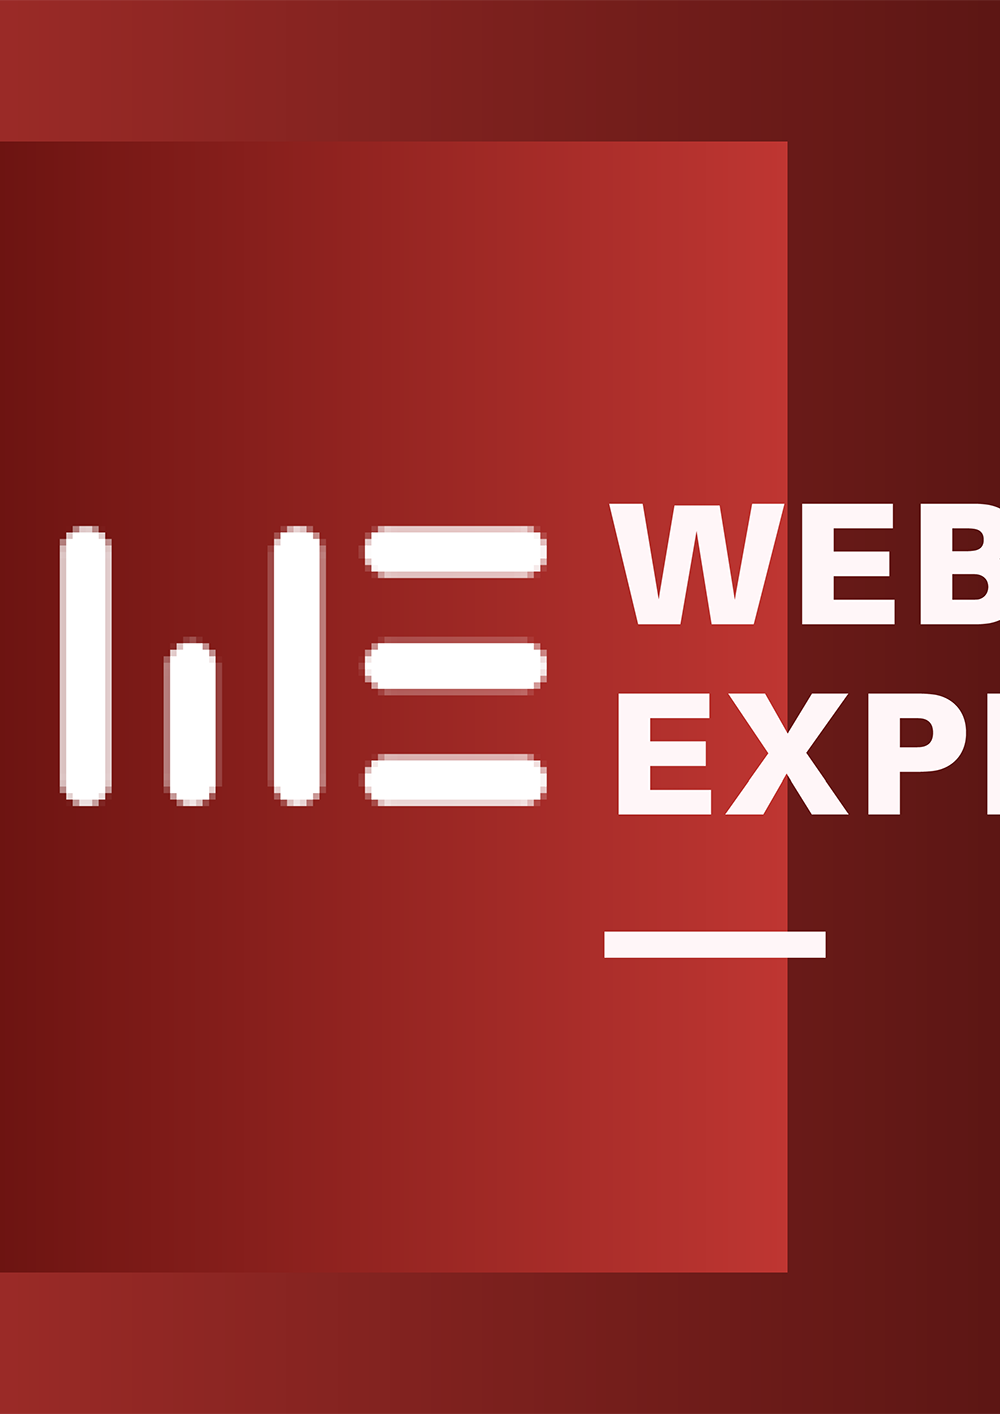 Website Express